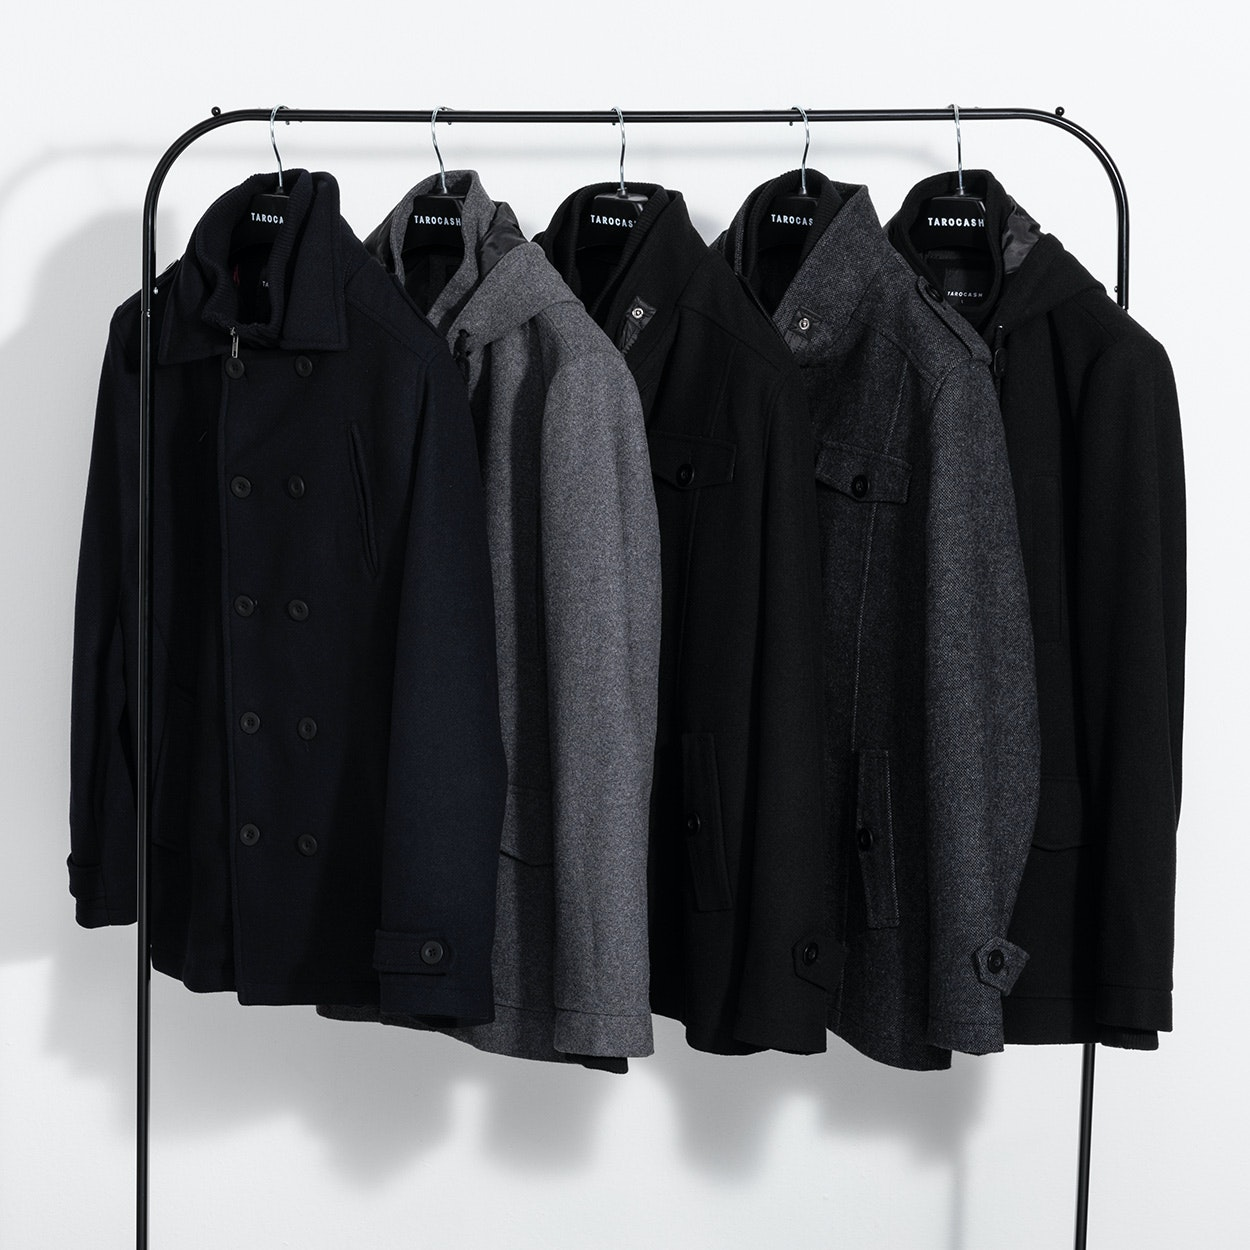 Time to layer up with Jackets from Tarocash